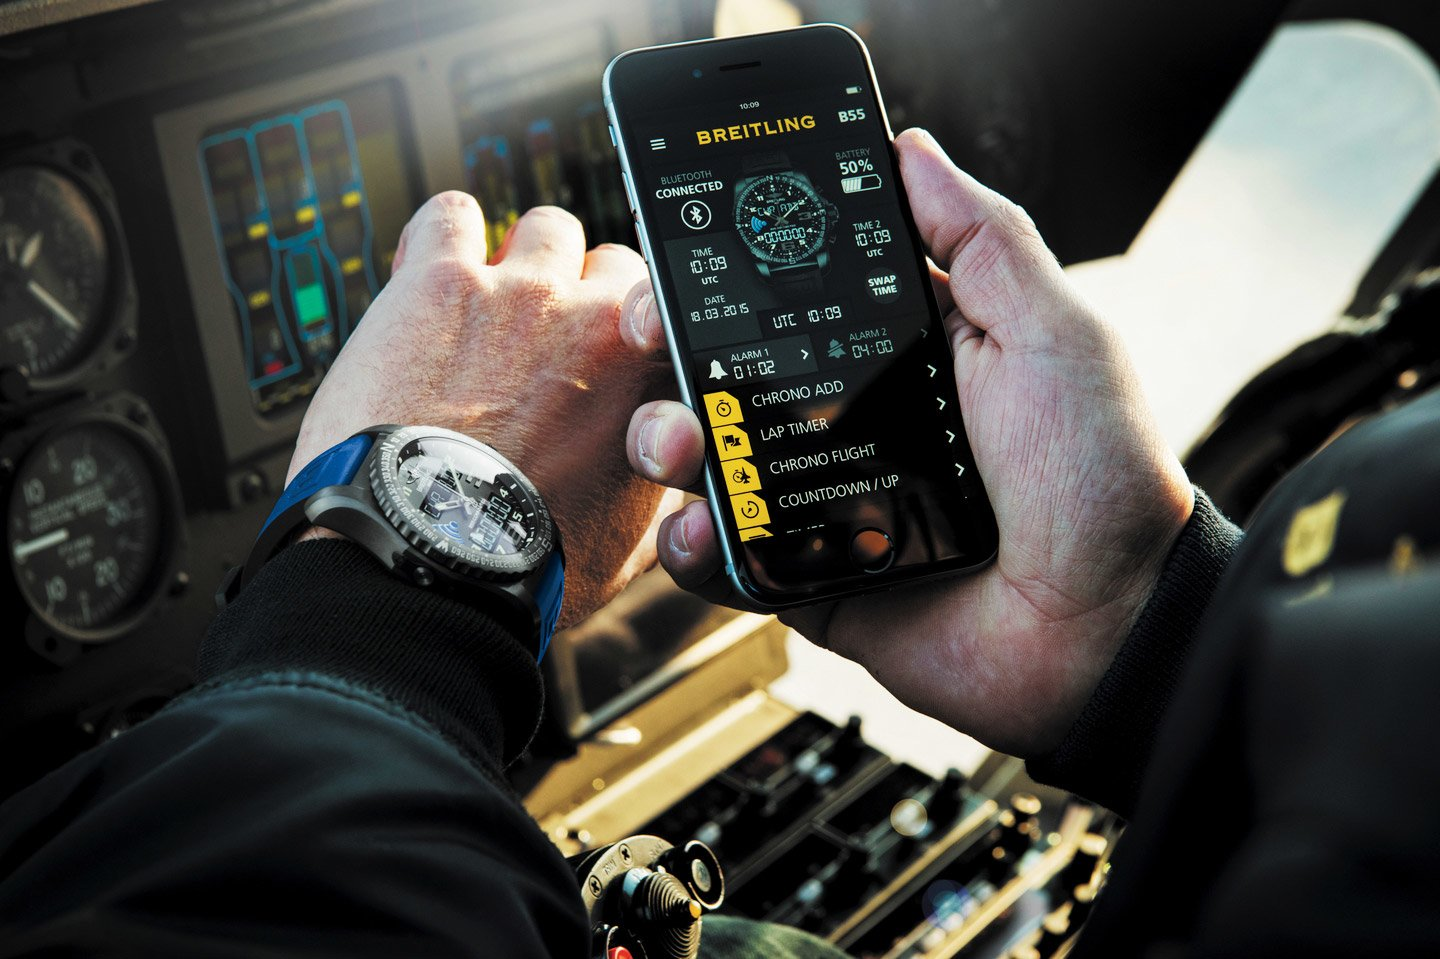 Breitling-B55-Connected-Lifestyle-thumb-1440xauto-25564